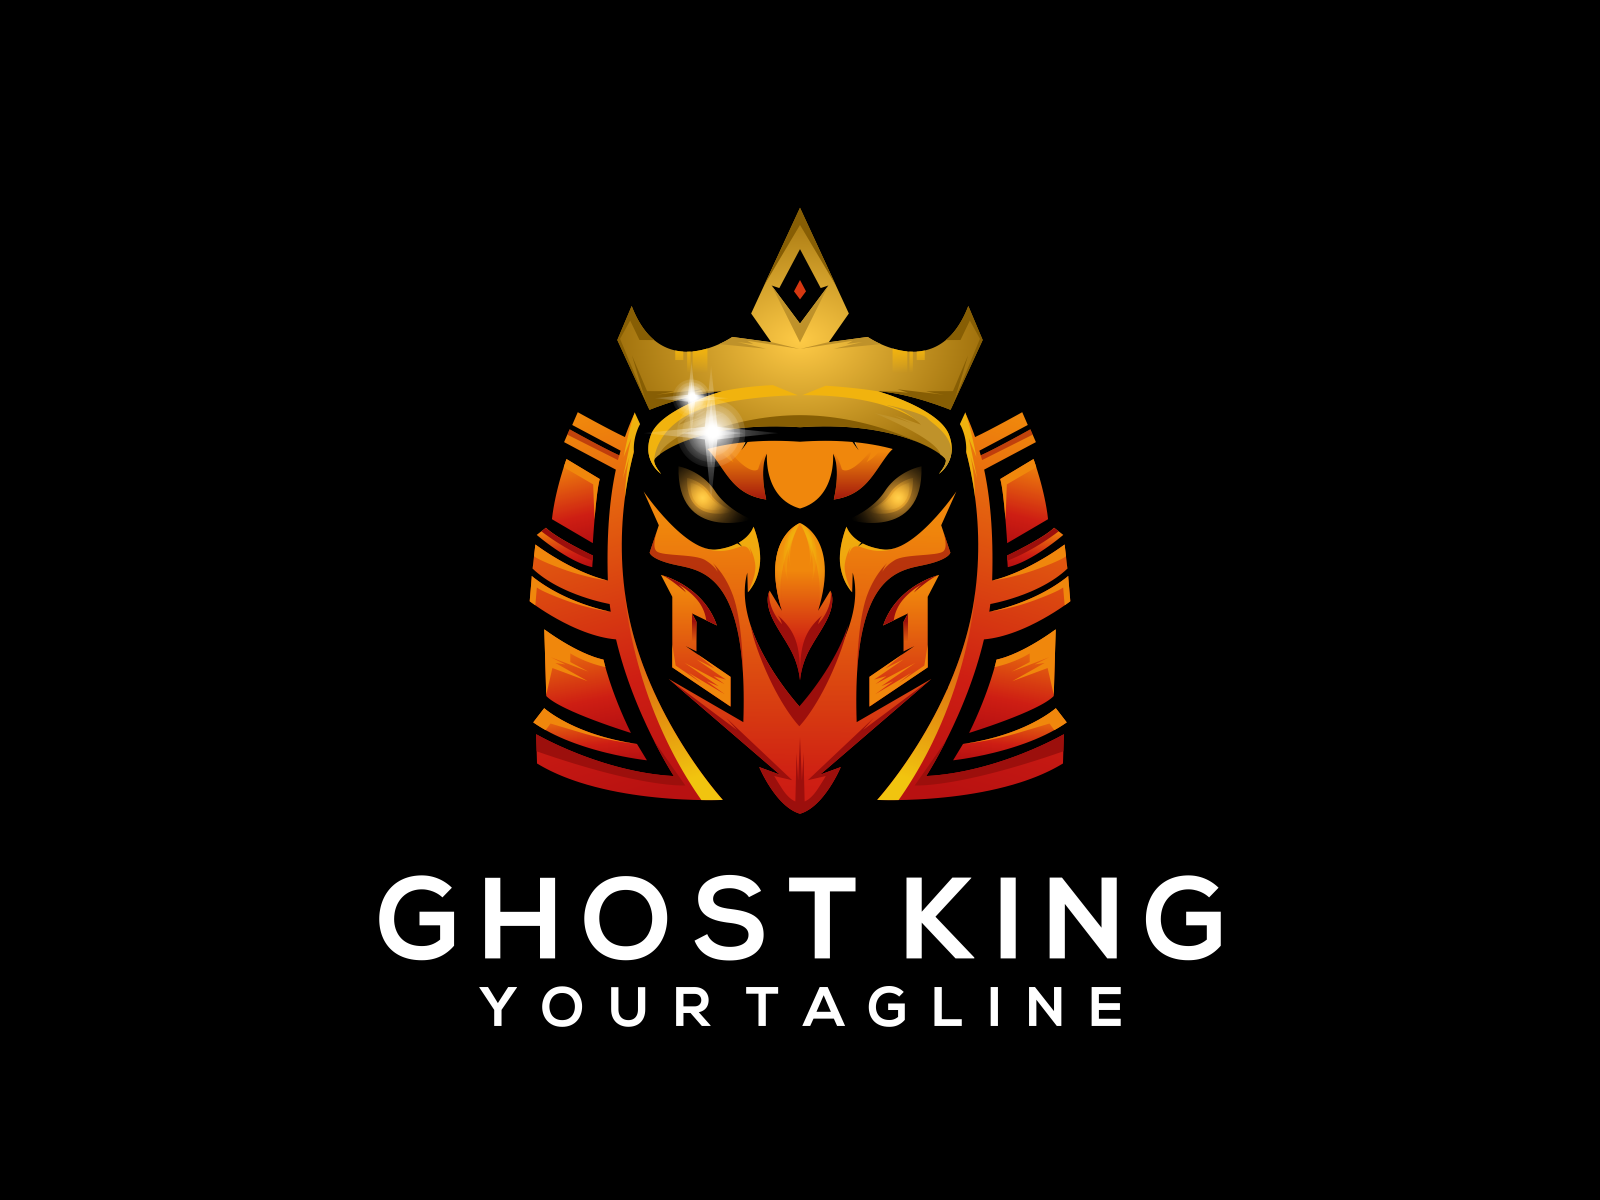 Ghost King By Gambar Drips On Dribbble